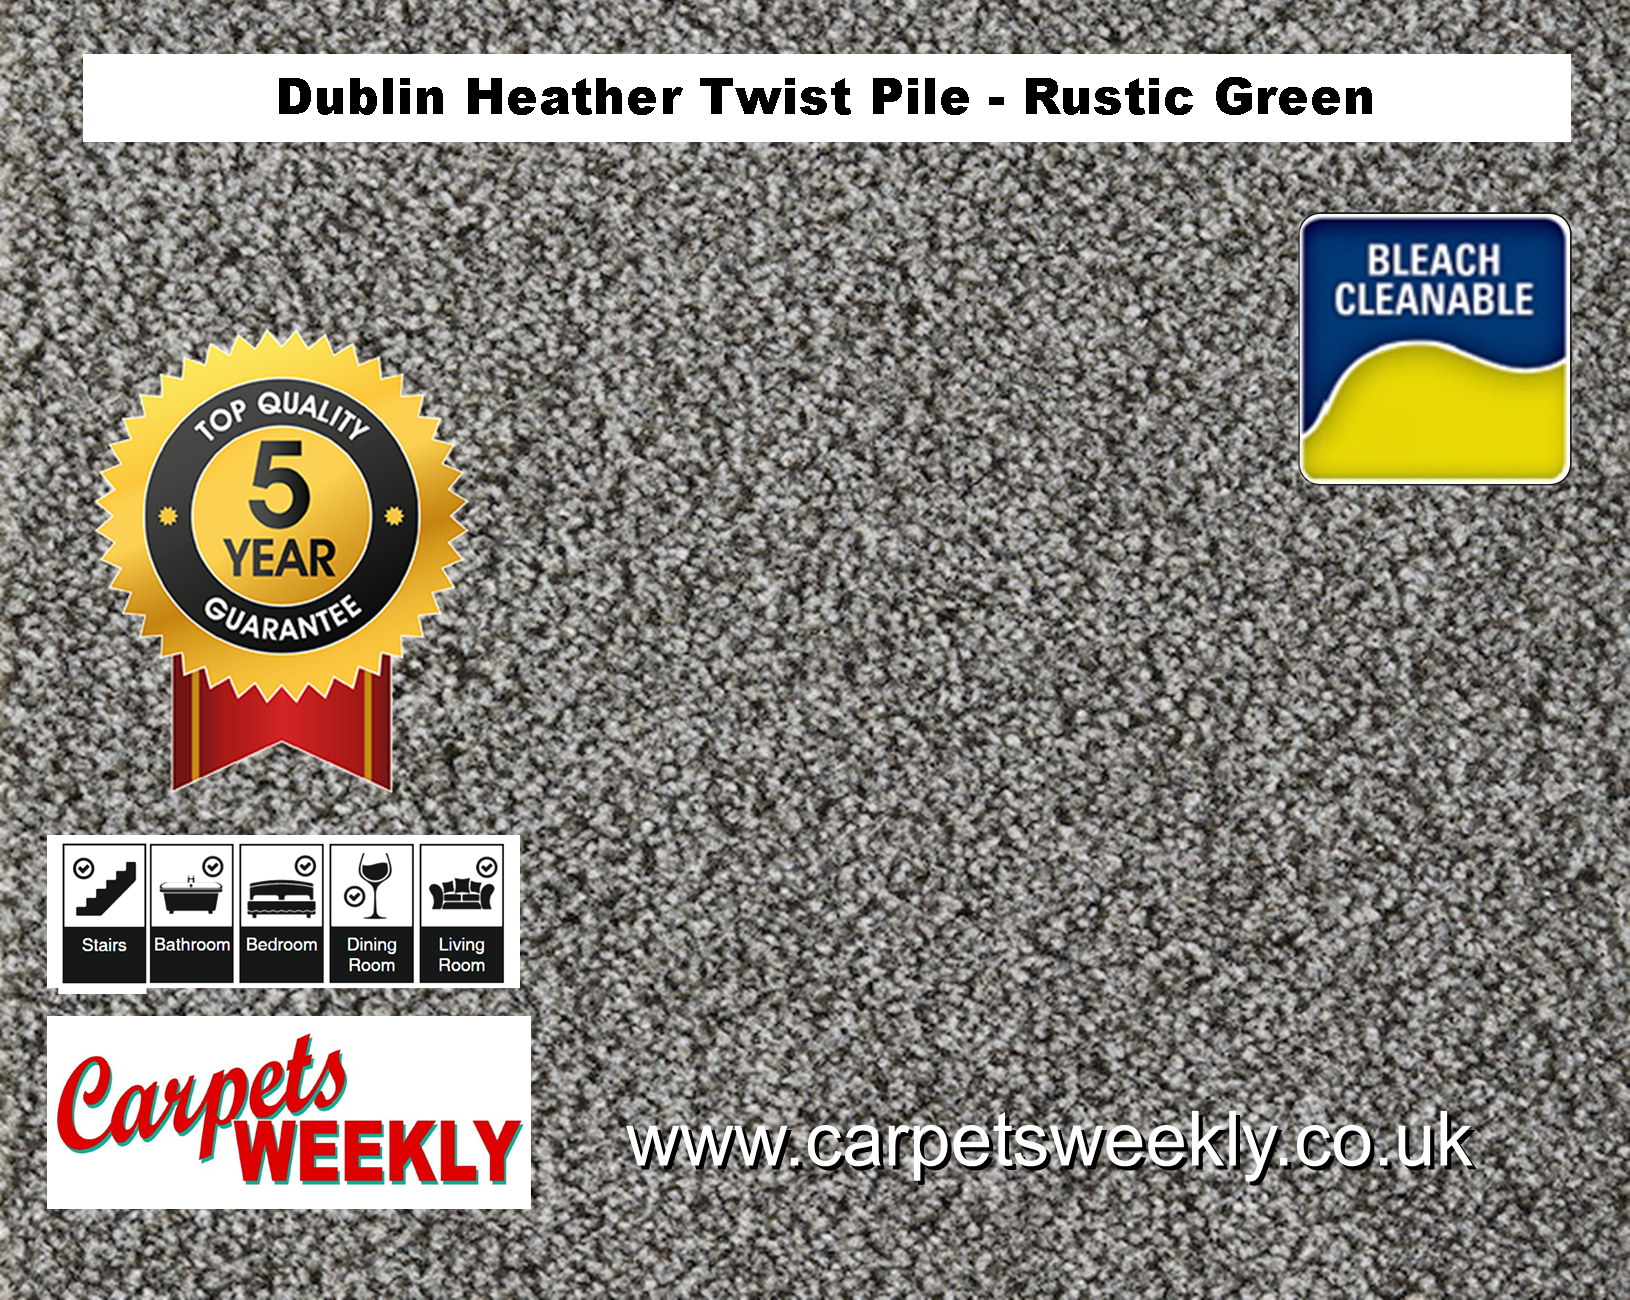 Carpets Weekly Dublin Heather Rustic Green - 229 mid range carpet